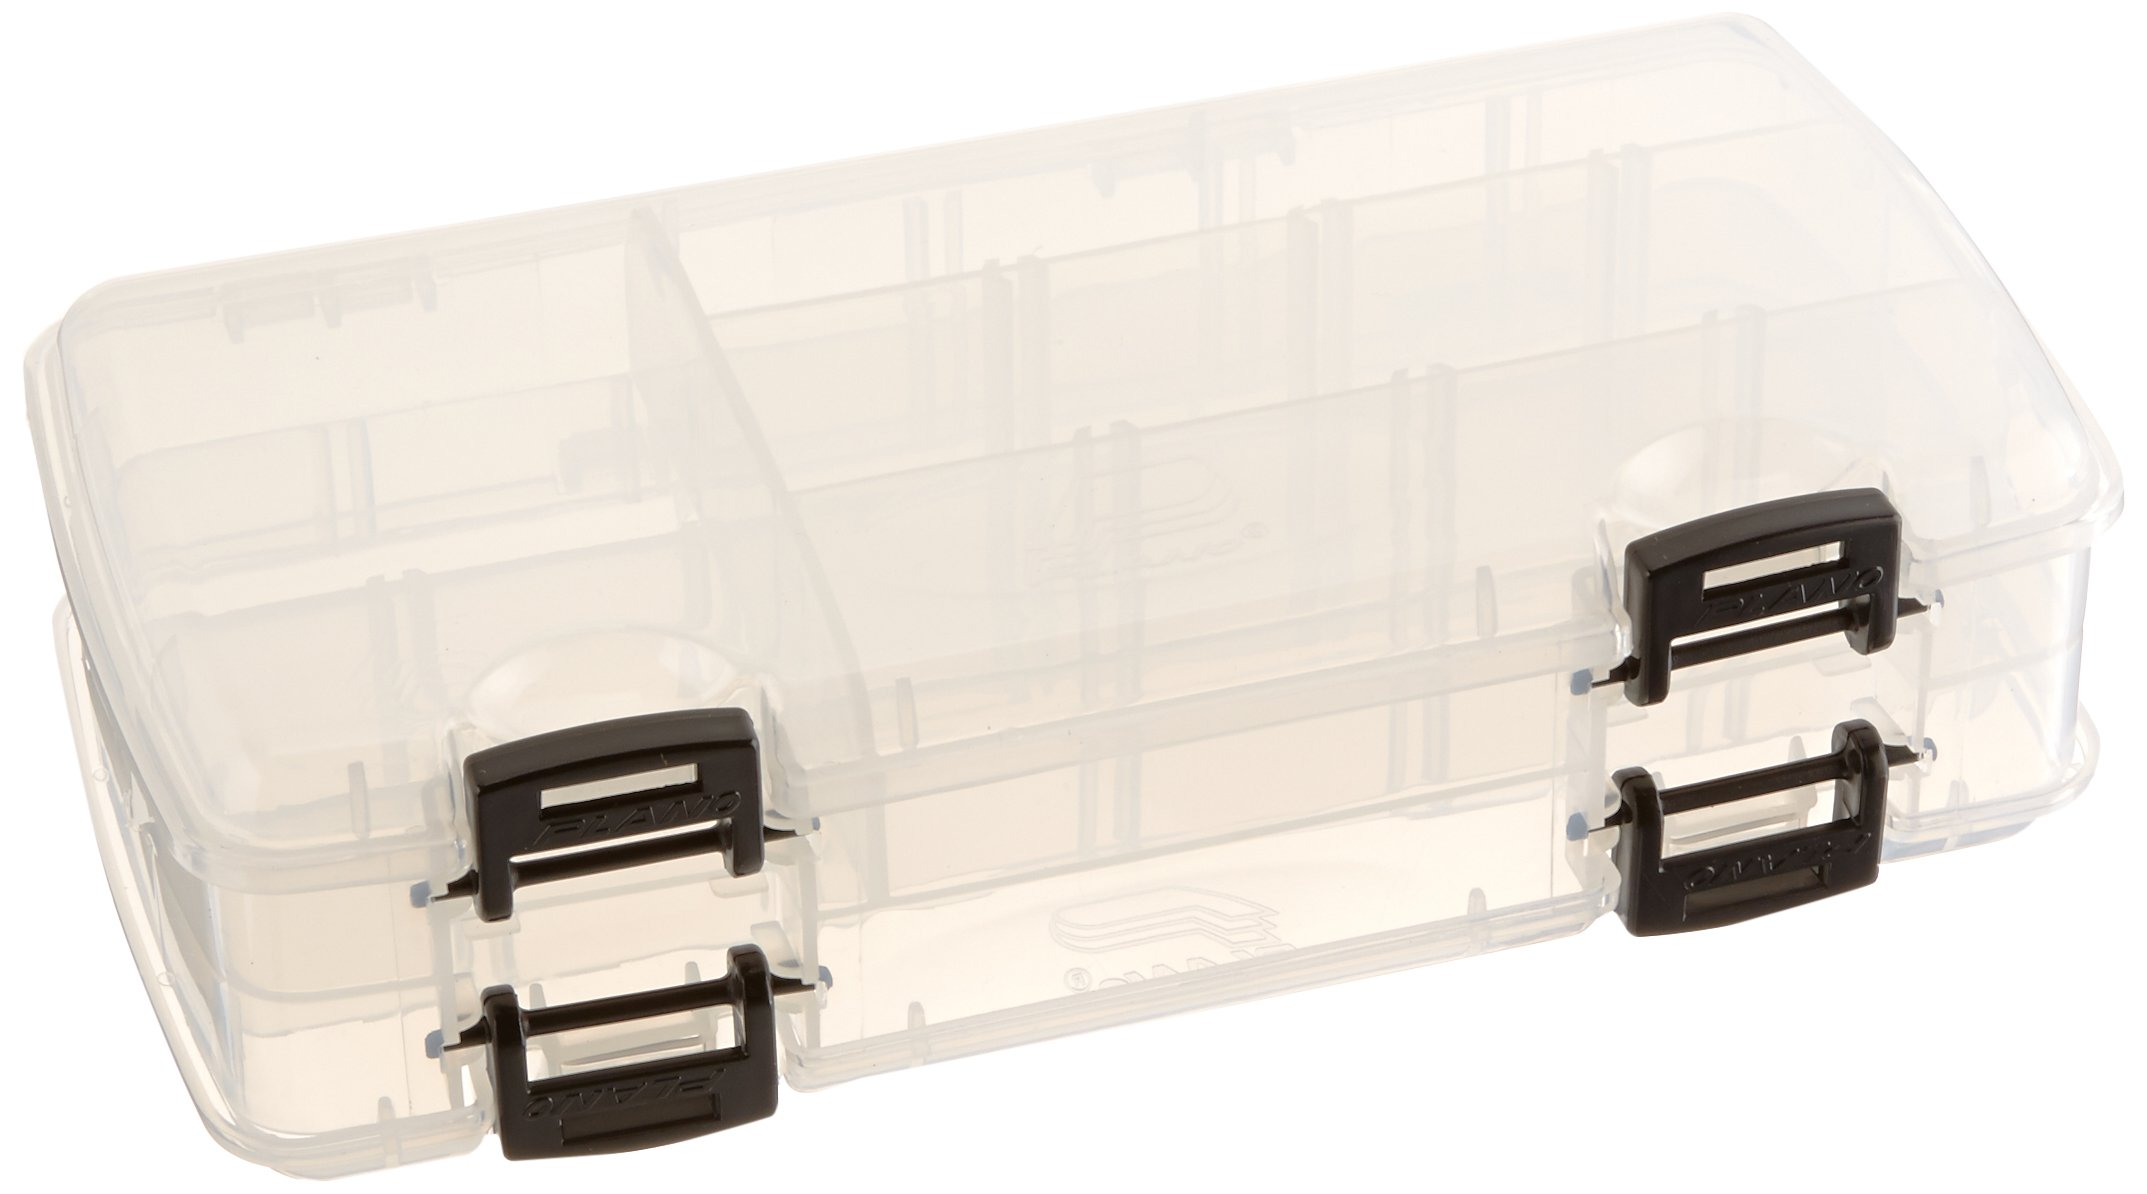 Plano 350022 3500-22 Double-Sided Tackle Box, Premium Tackle Storage,Multi